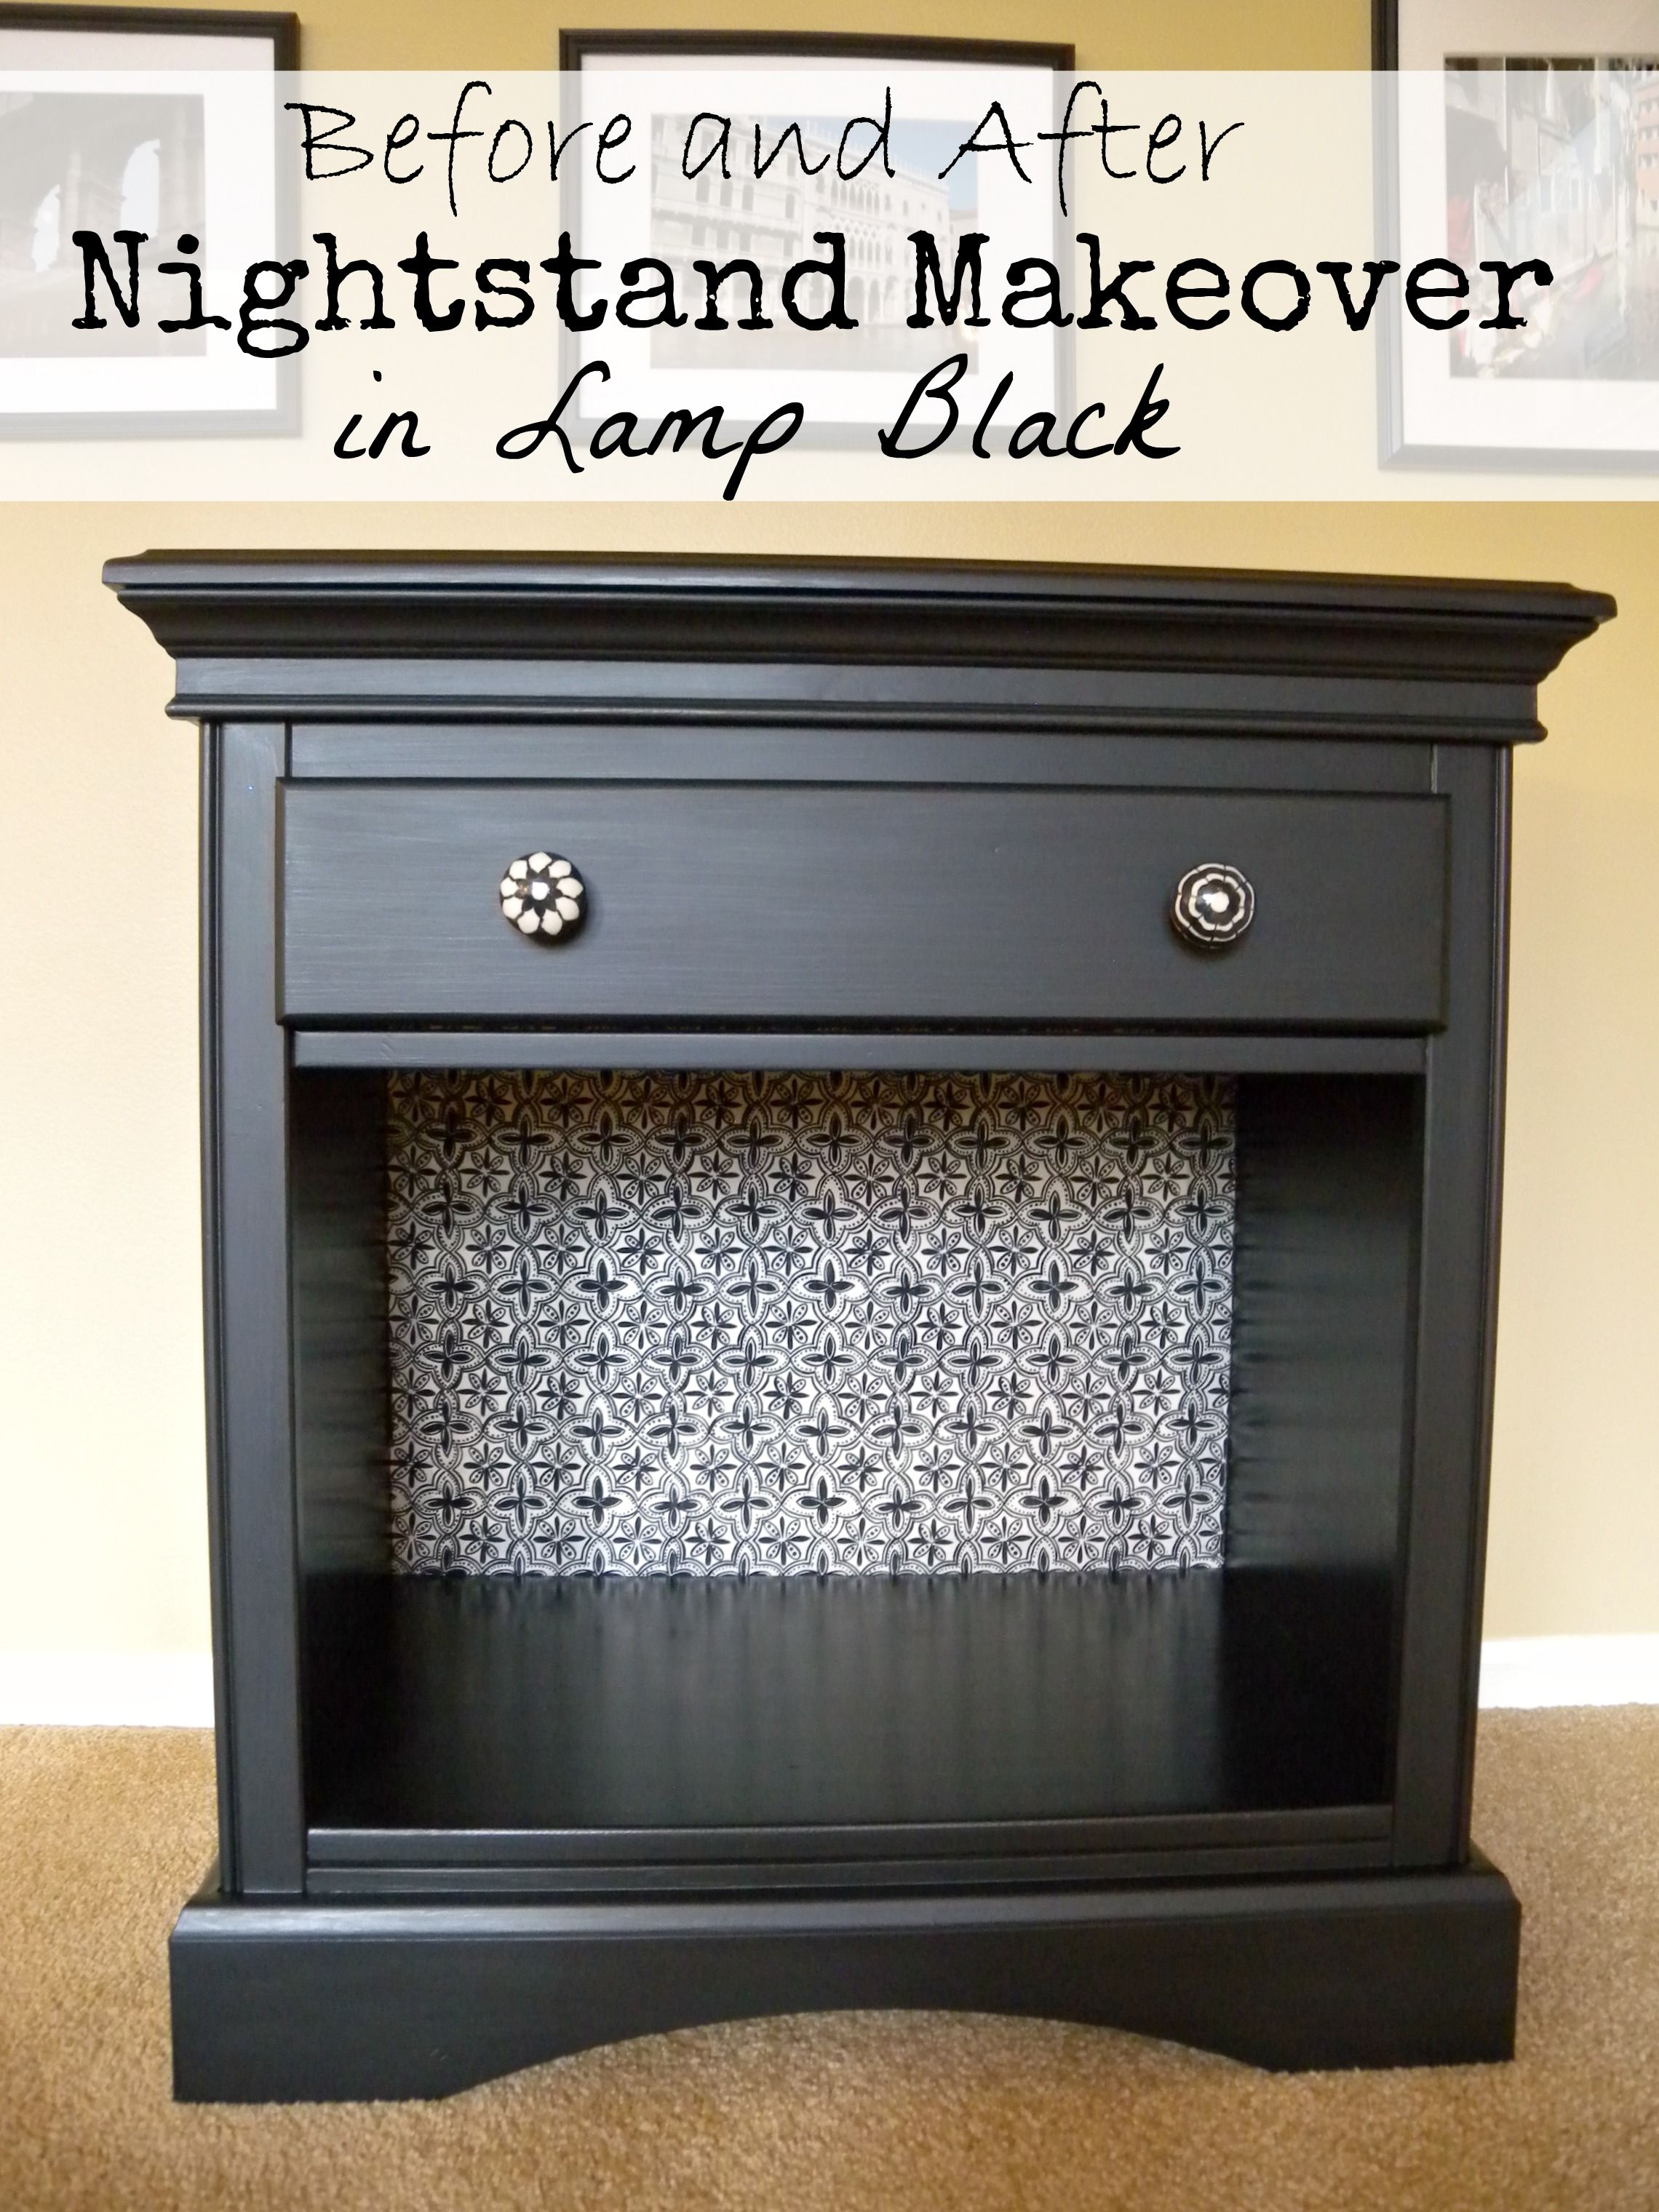 Painting furniture black before and after - Before And After Nightstand Makeover In Lamp Black